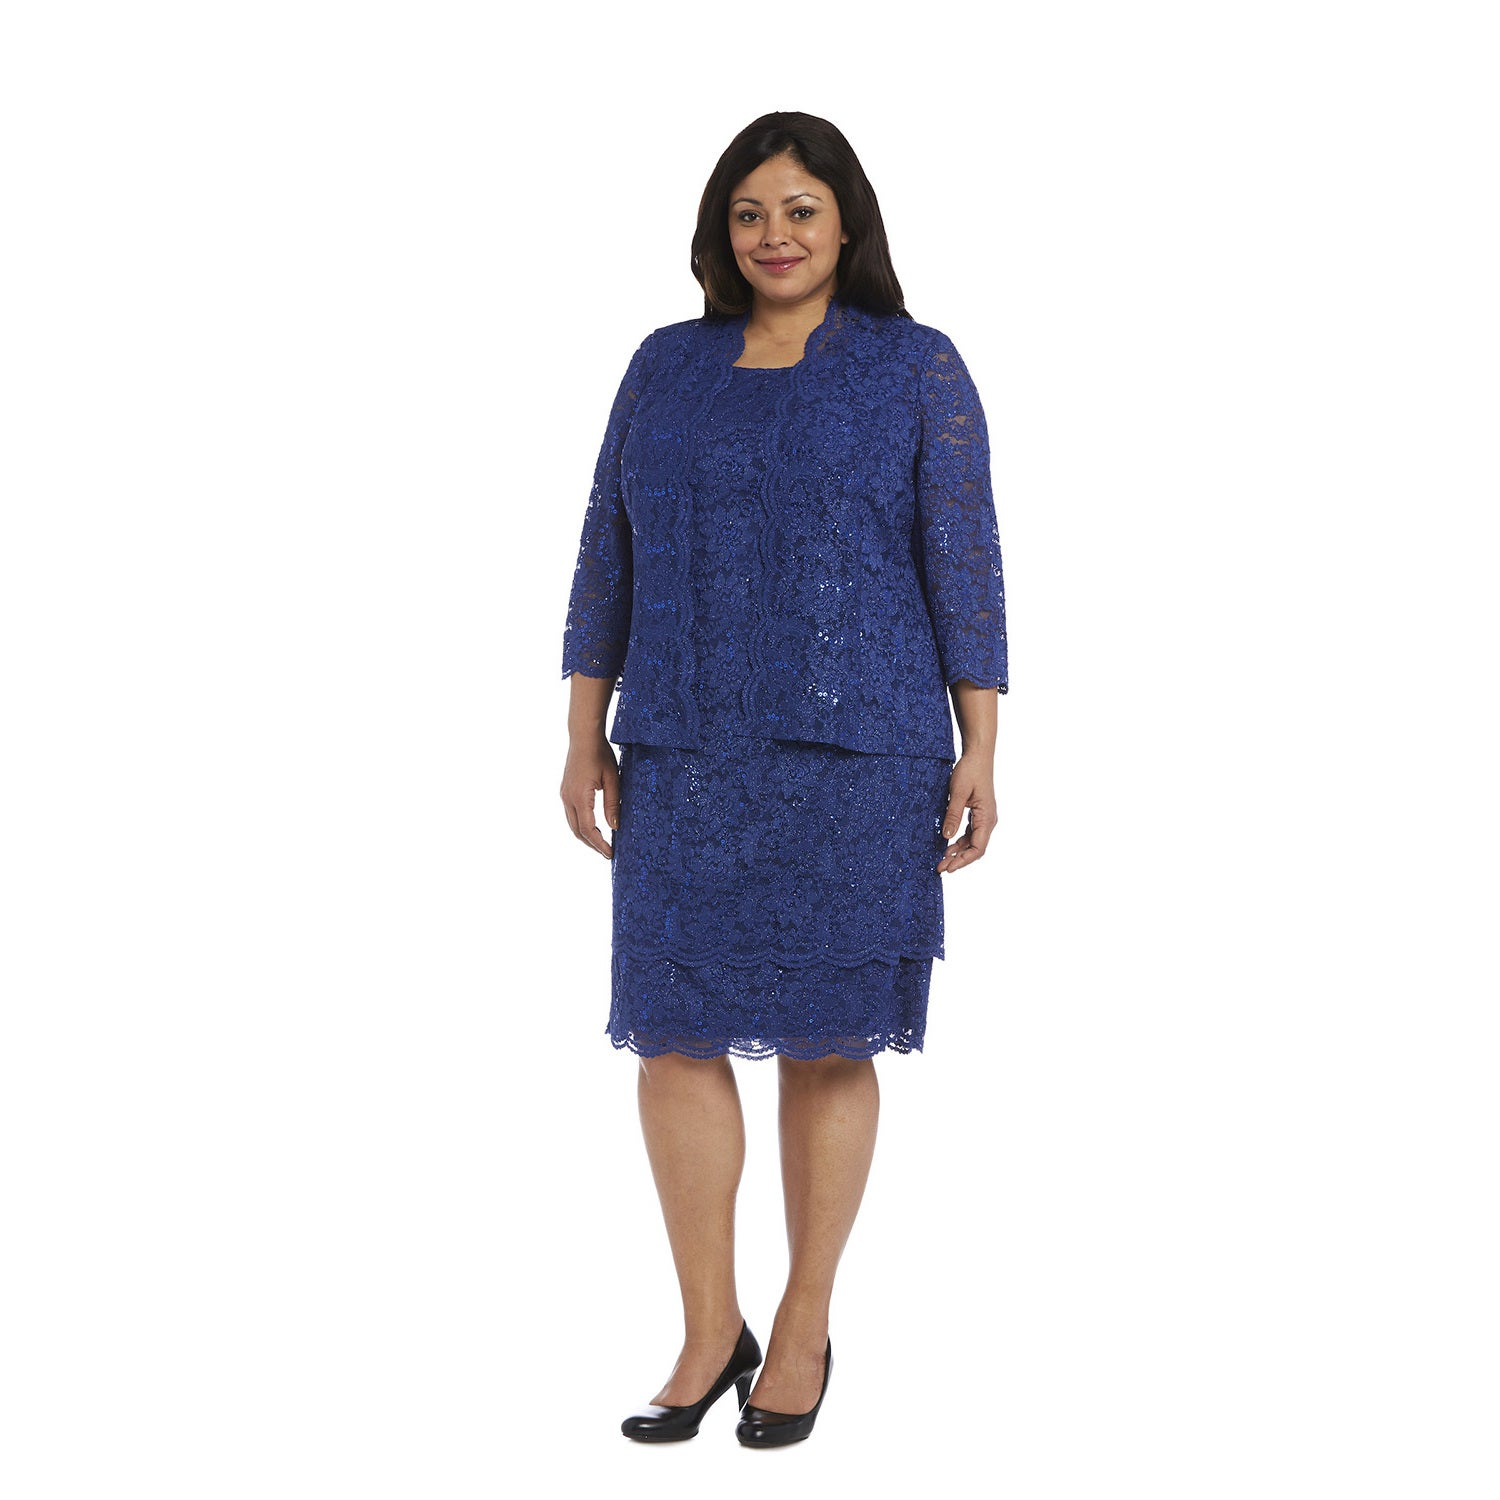 Ladies Plus Size Dresses With Jackets